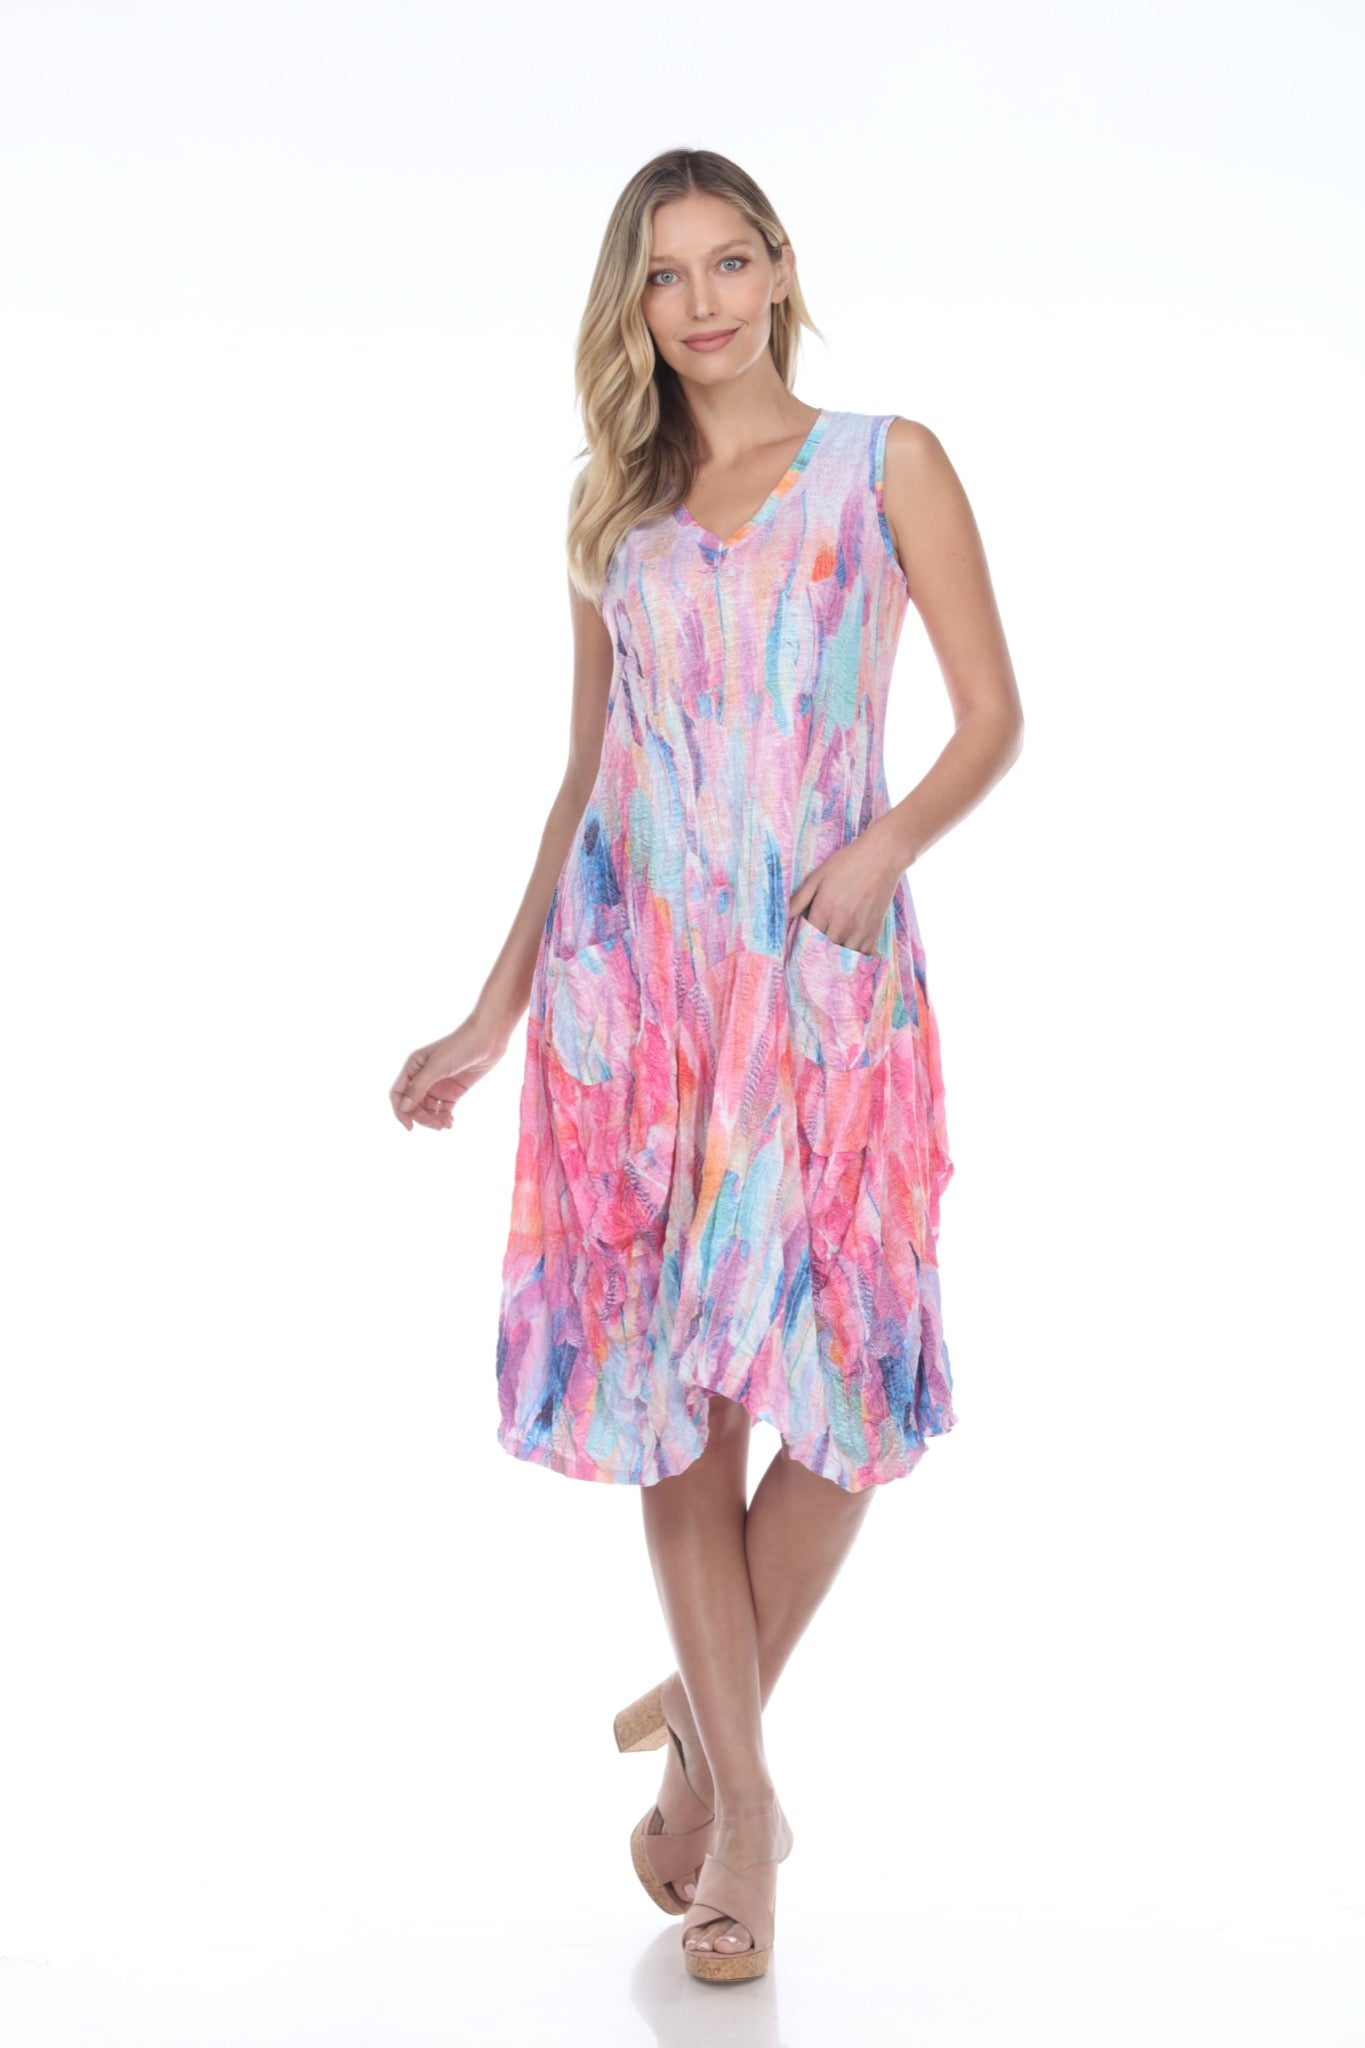 Valerie Dress - Multi Image - CARINE